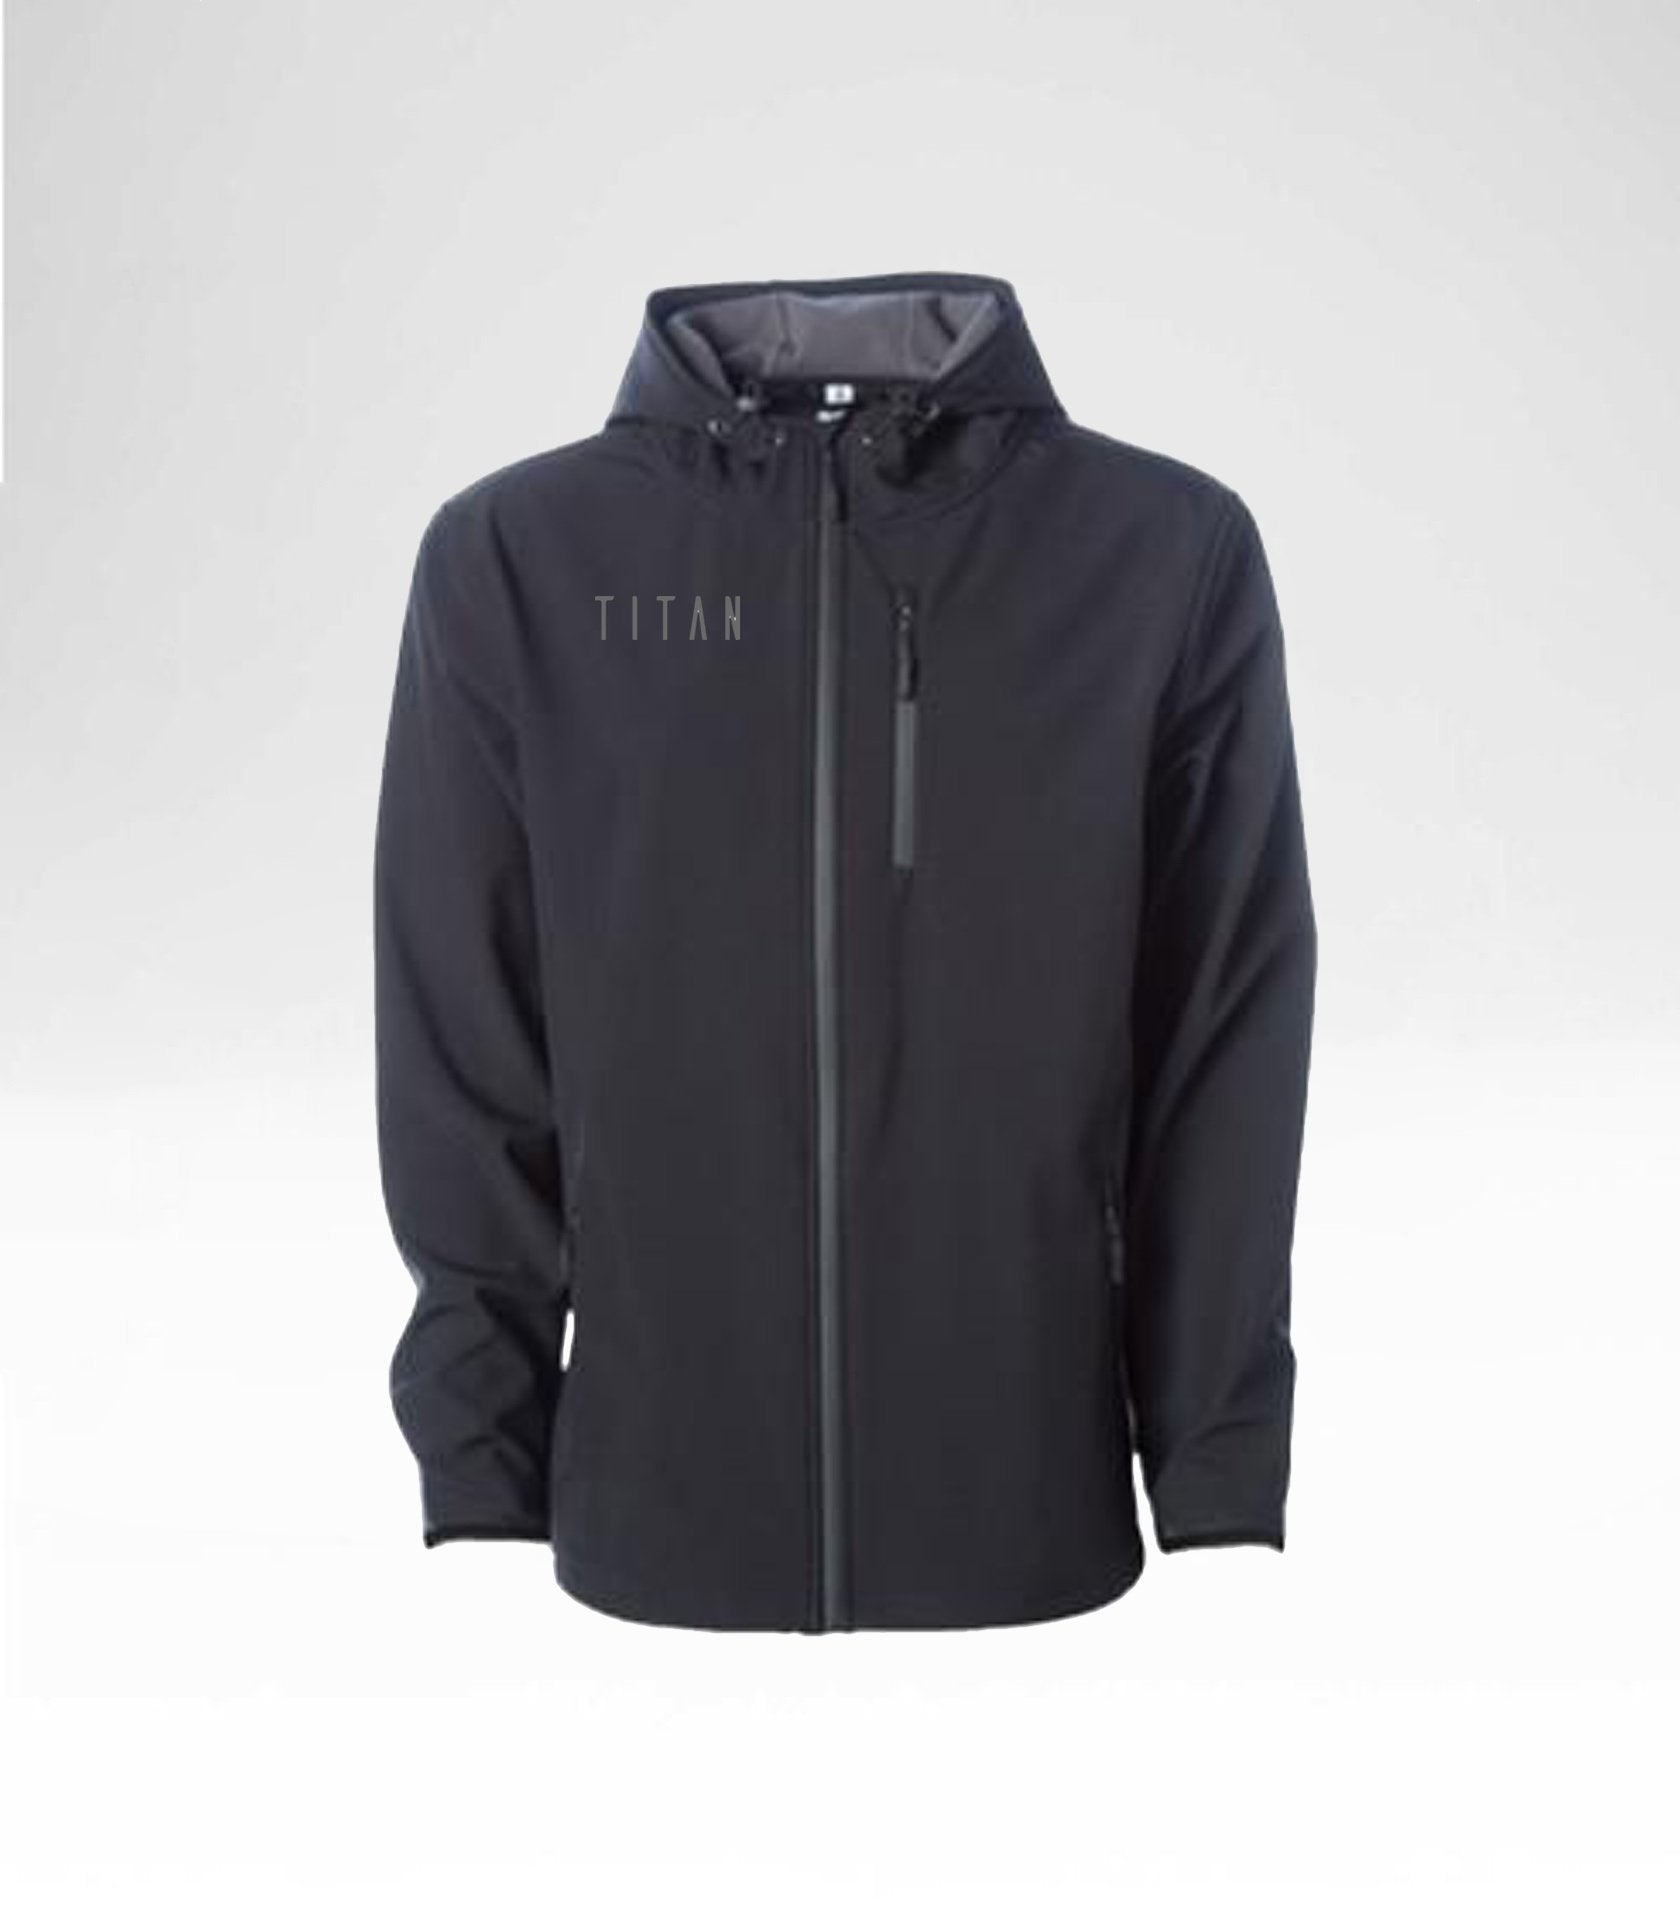 Conditions Jacket - Titan